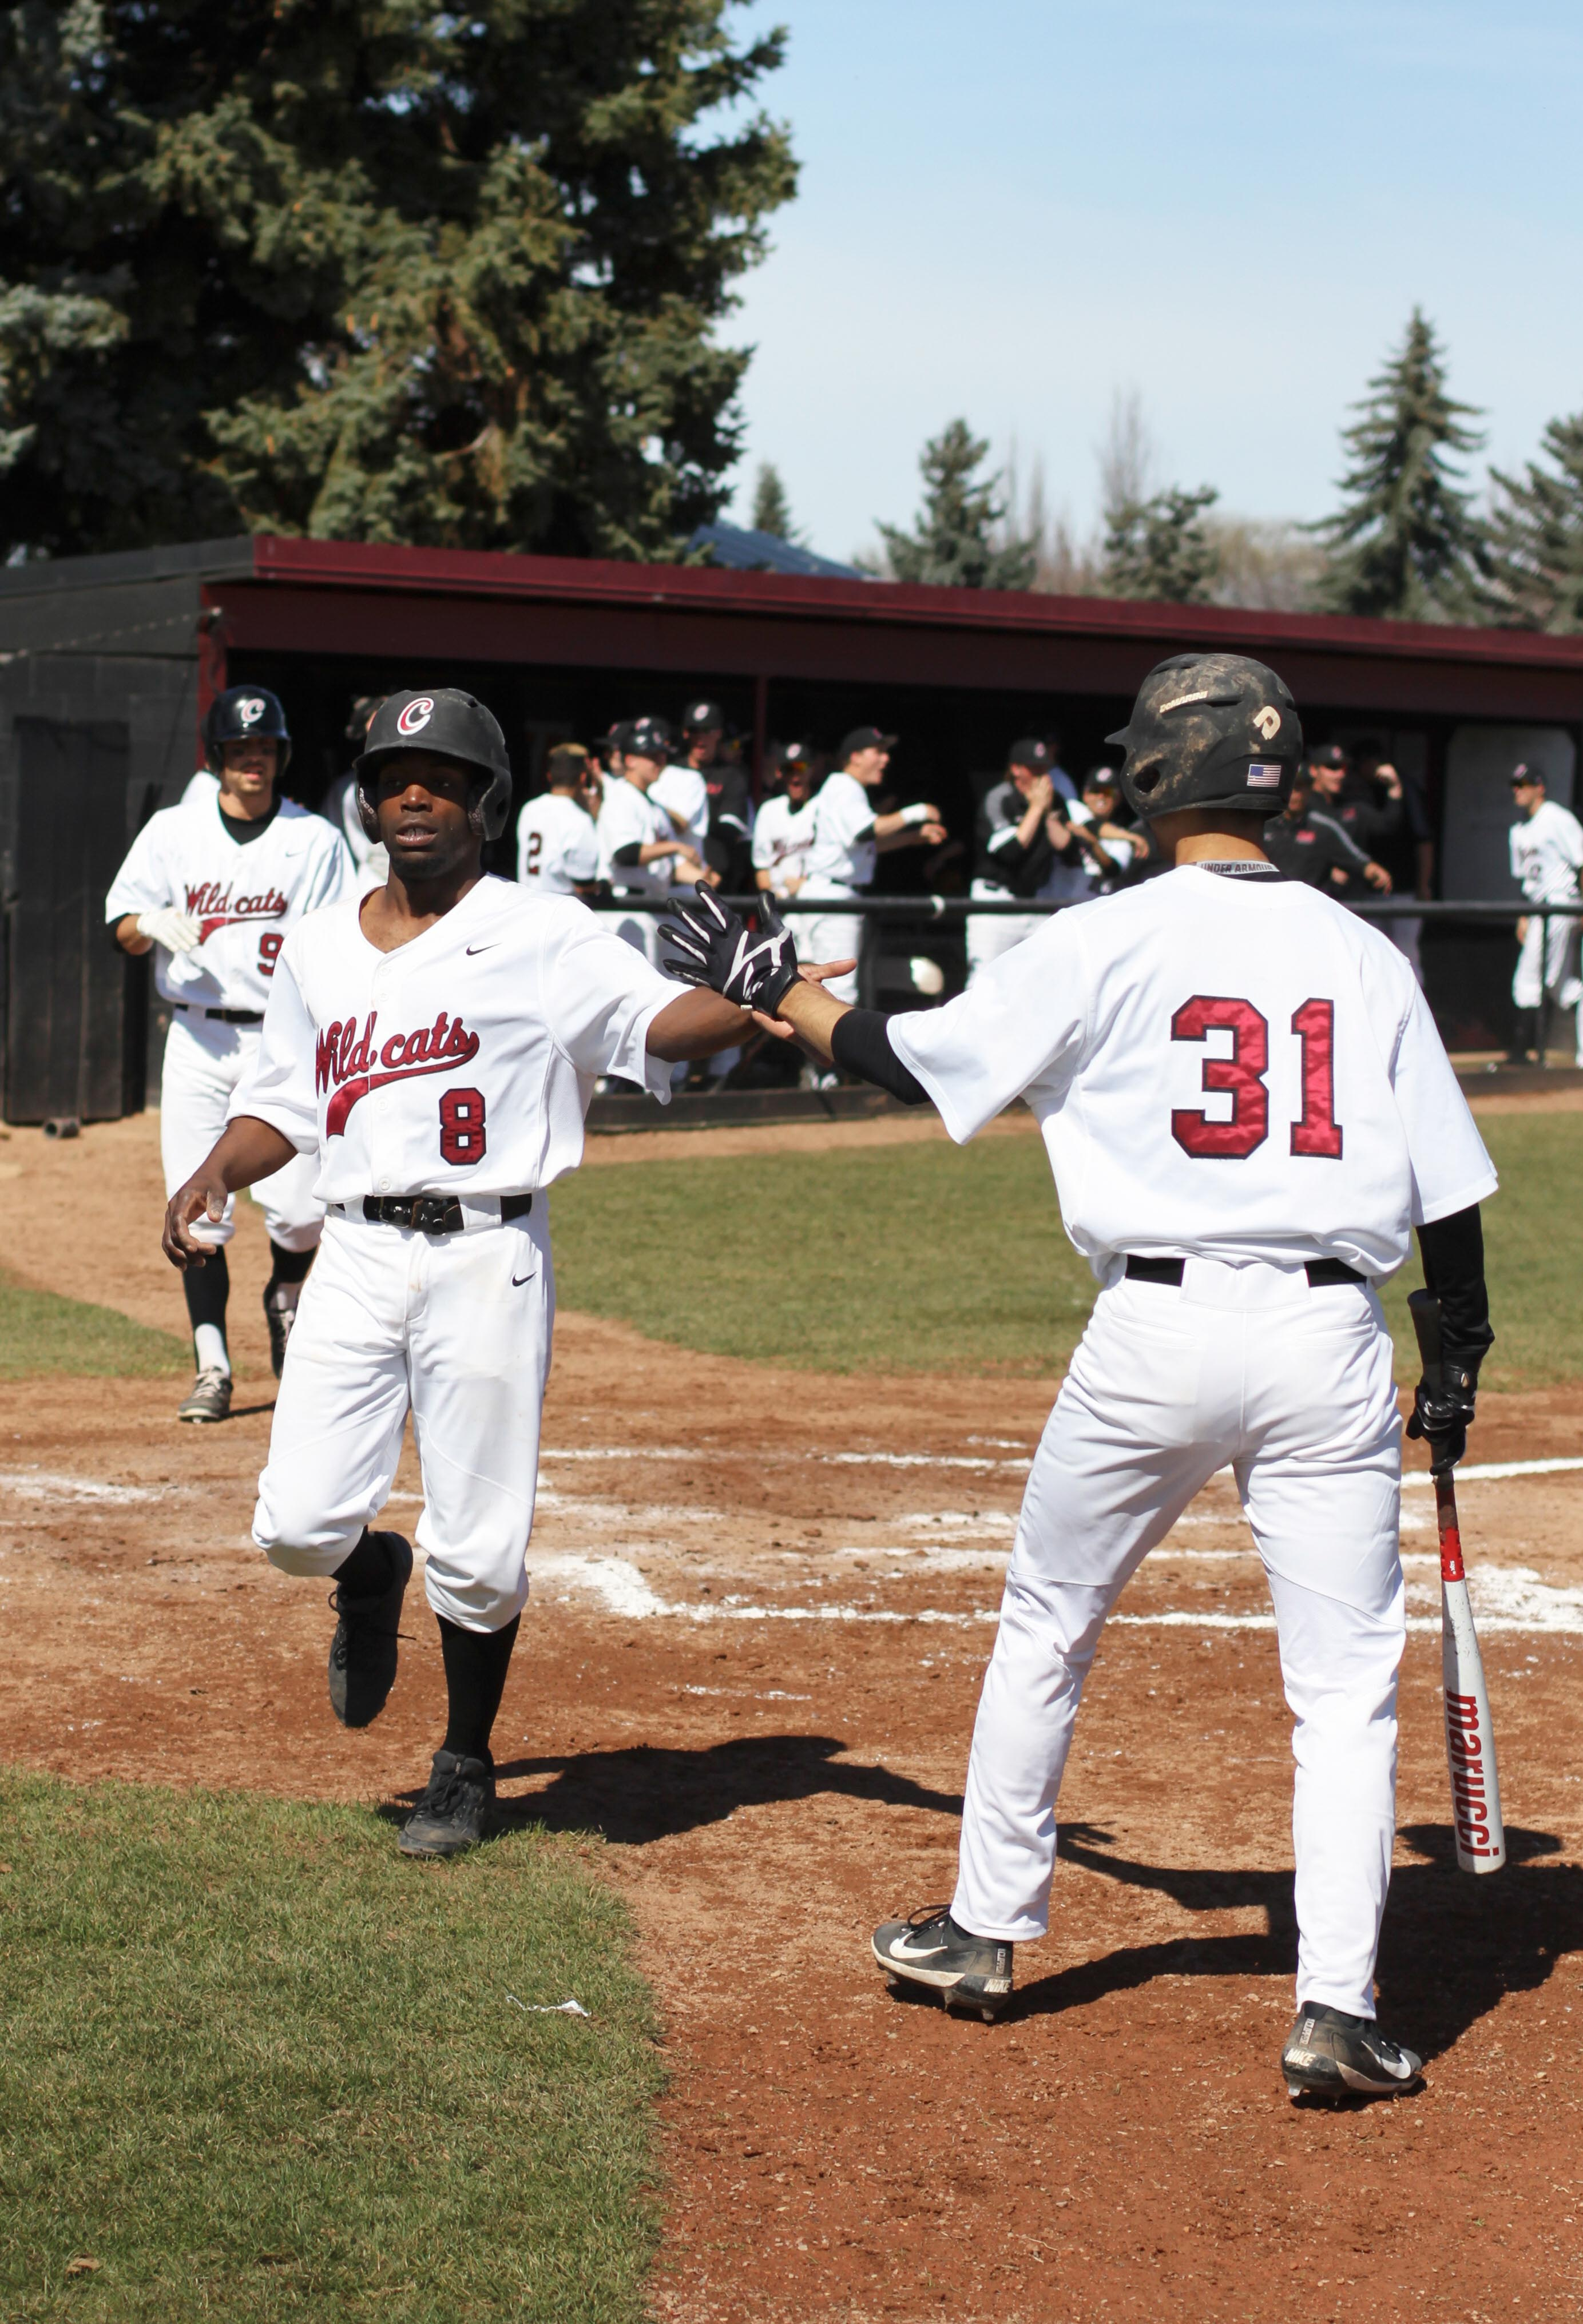 #8 Rory Graf-Brennen hi-fives #31 Yi-Fan Pan after rounding the bases.